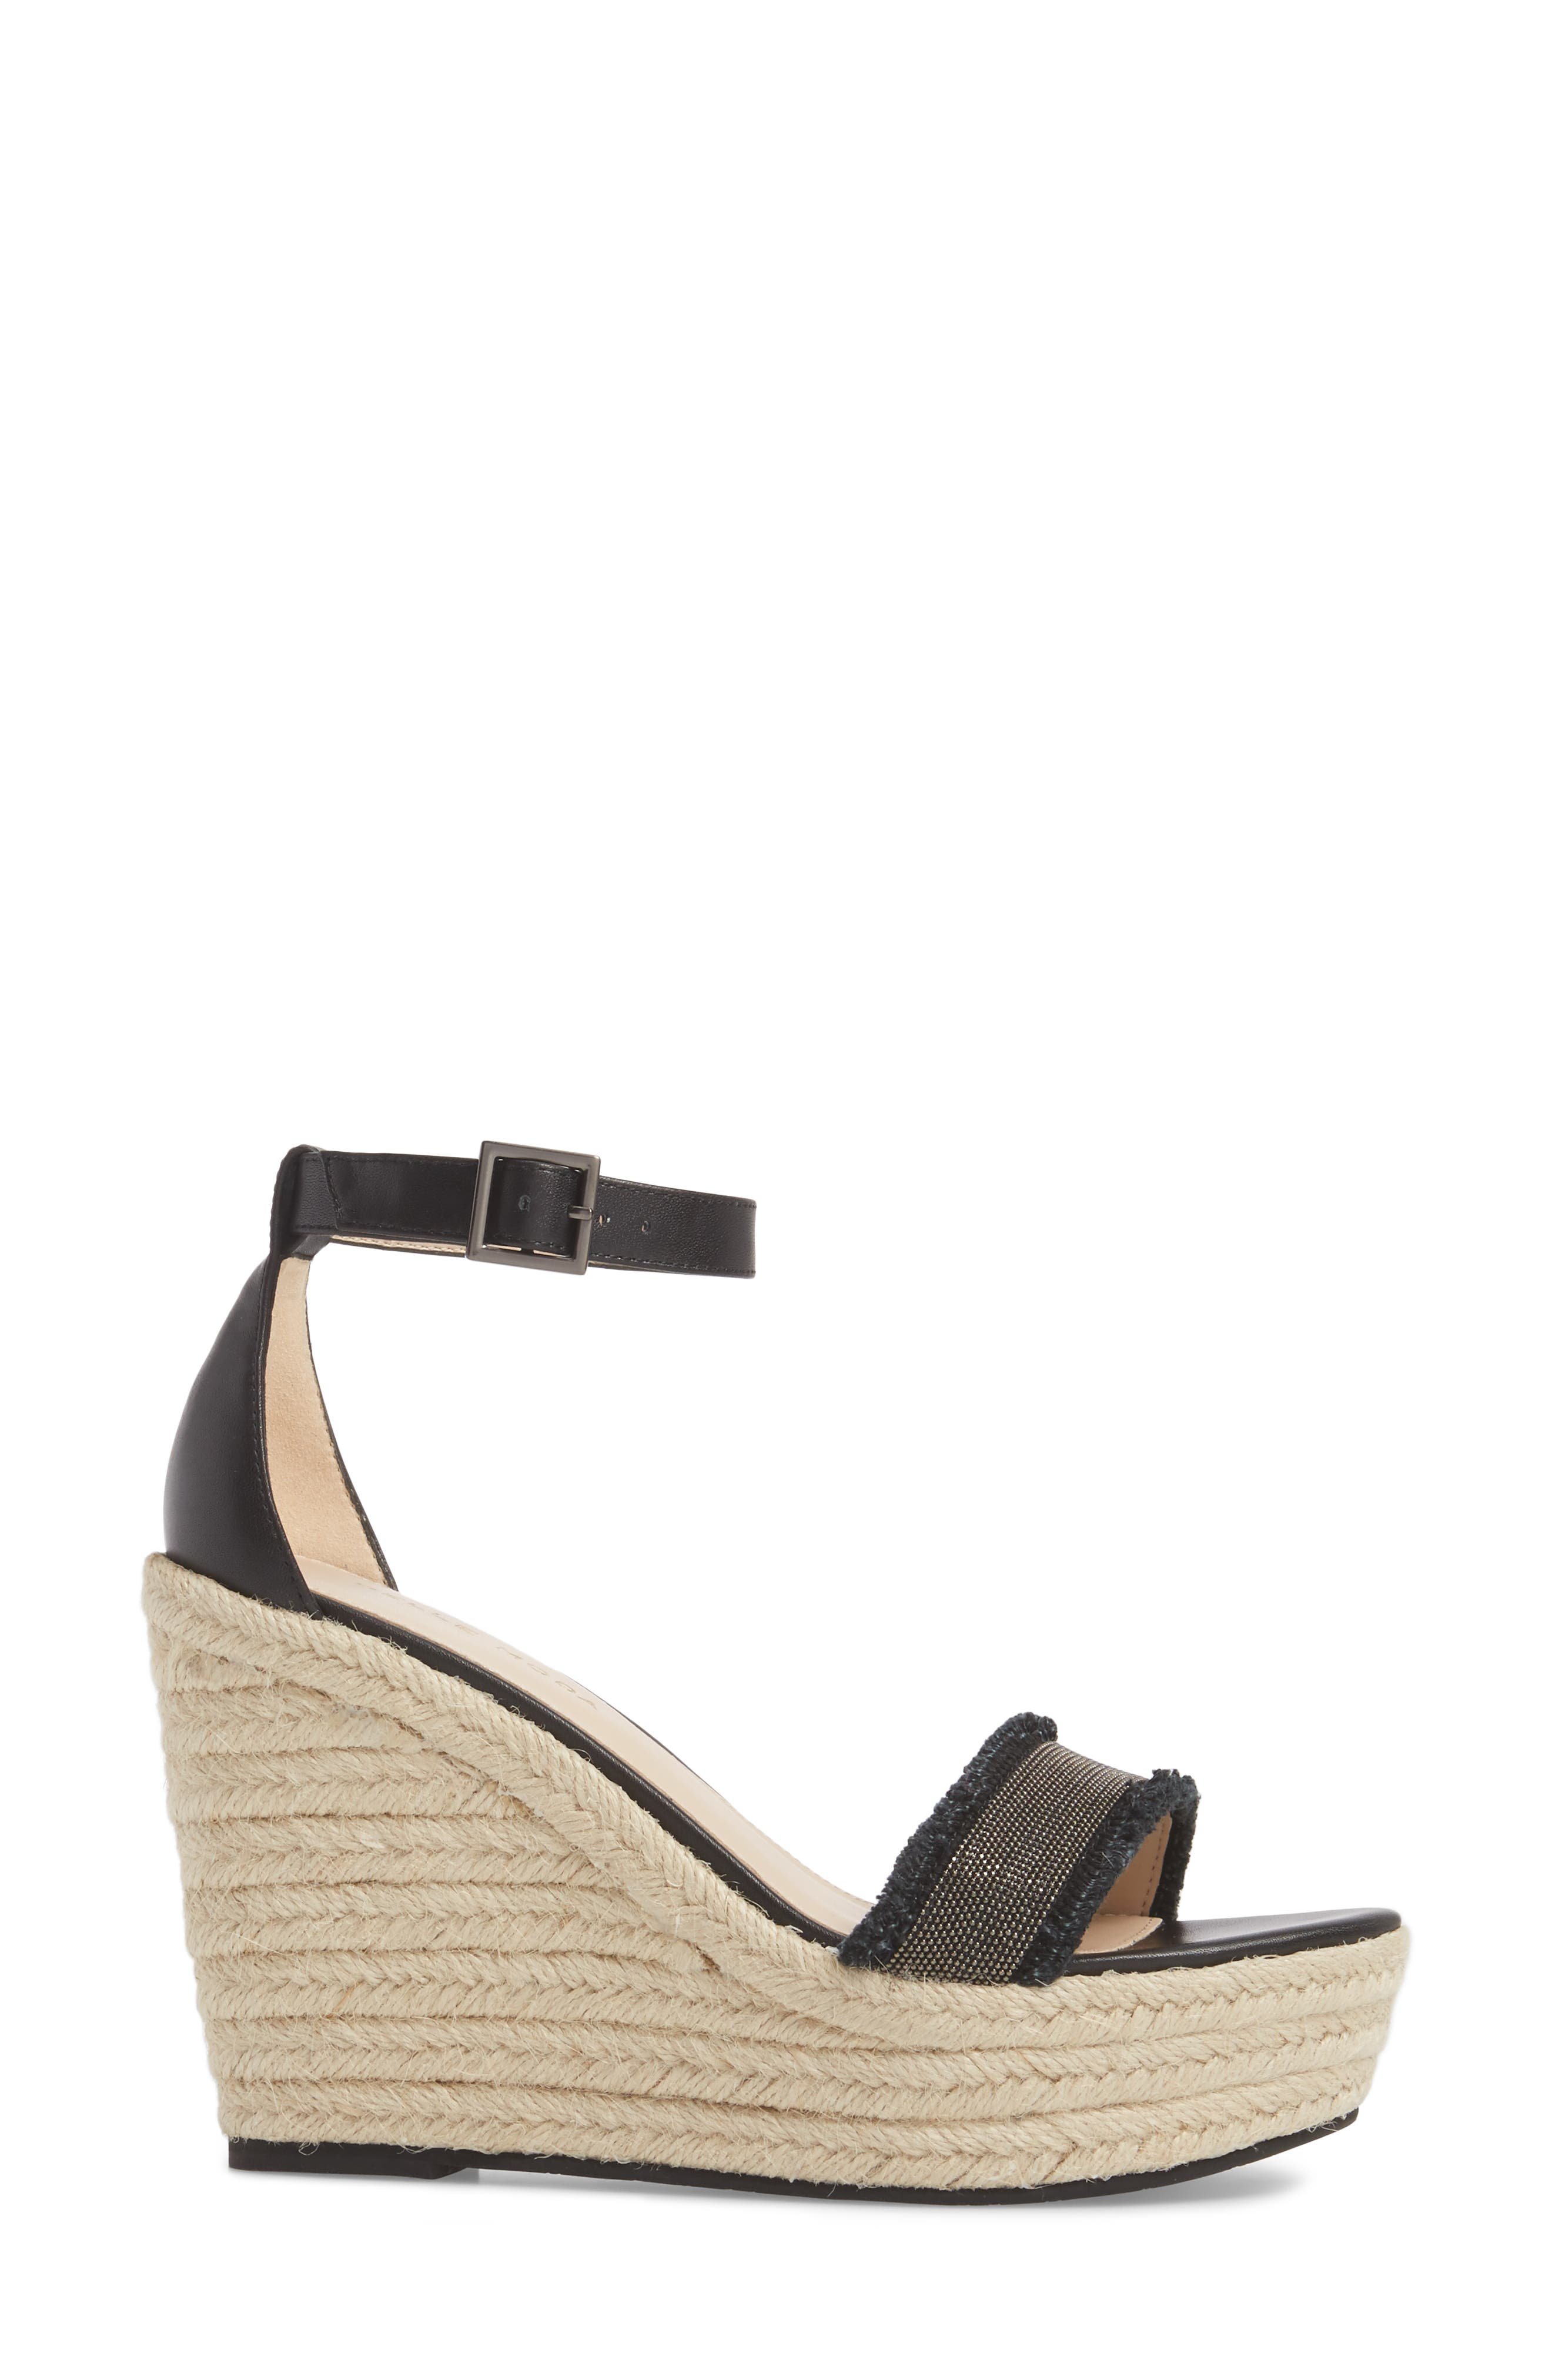 Radley Espadrille Wedge Sandal,                             Alternate thumbnail 3, color,                             BLACK LEATHER